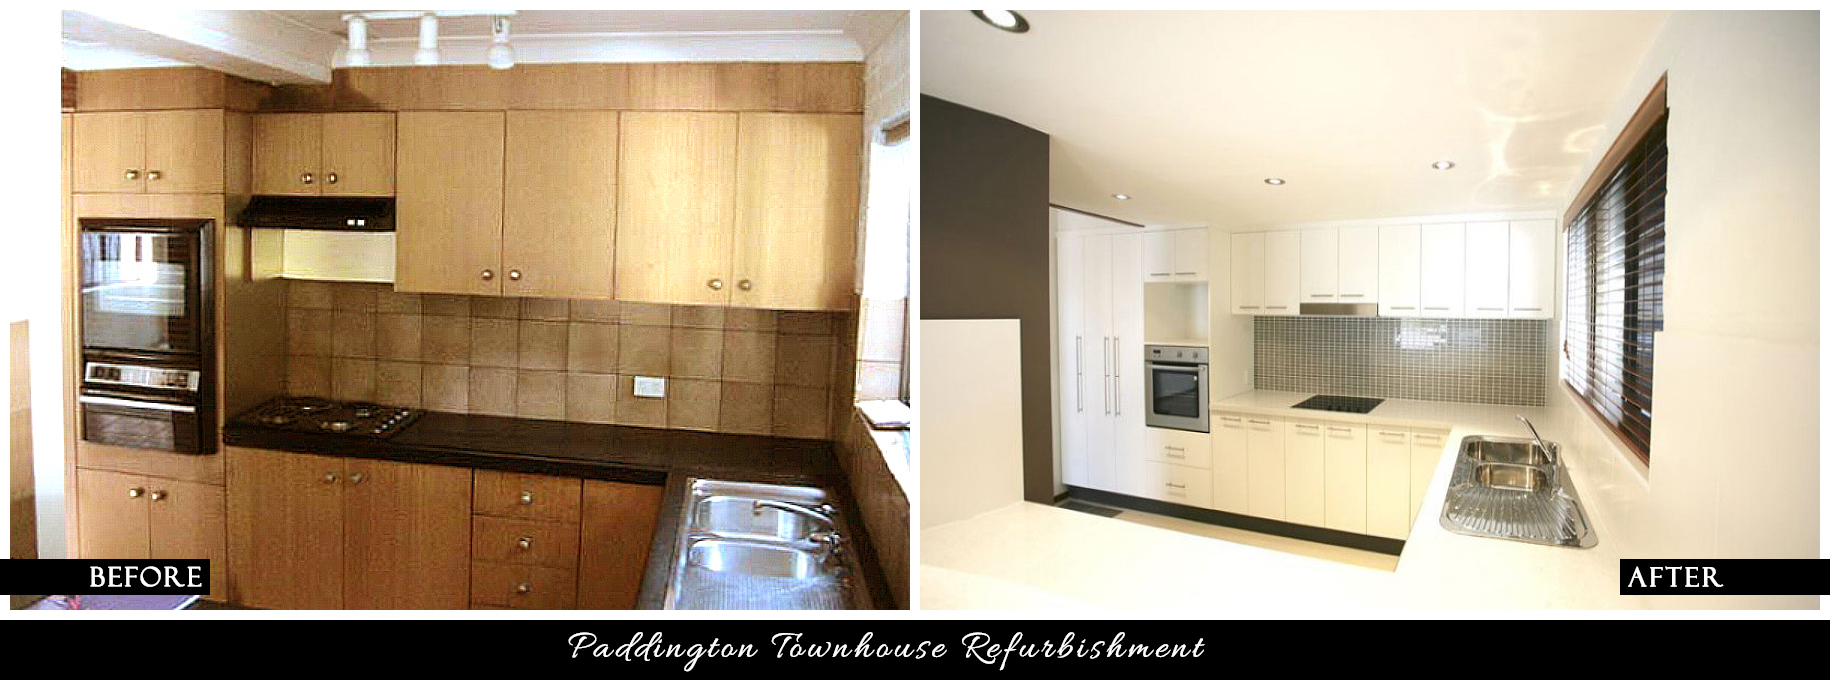 CANDY & CO. - PADDINGTON T.HOUSE Before & After - Kitchen